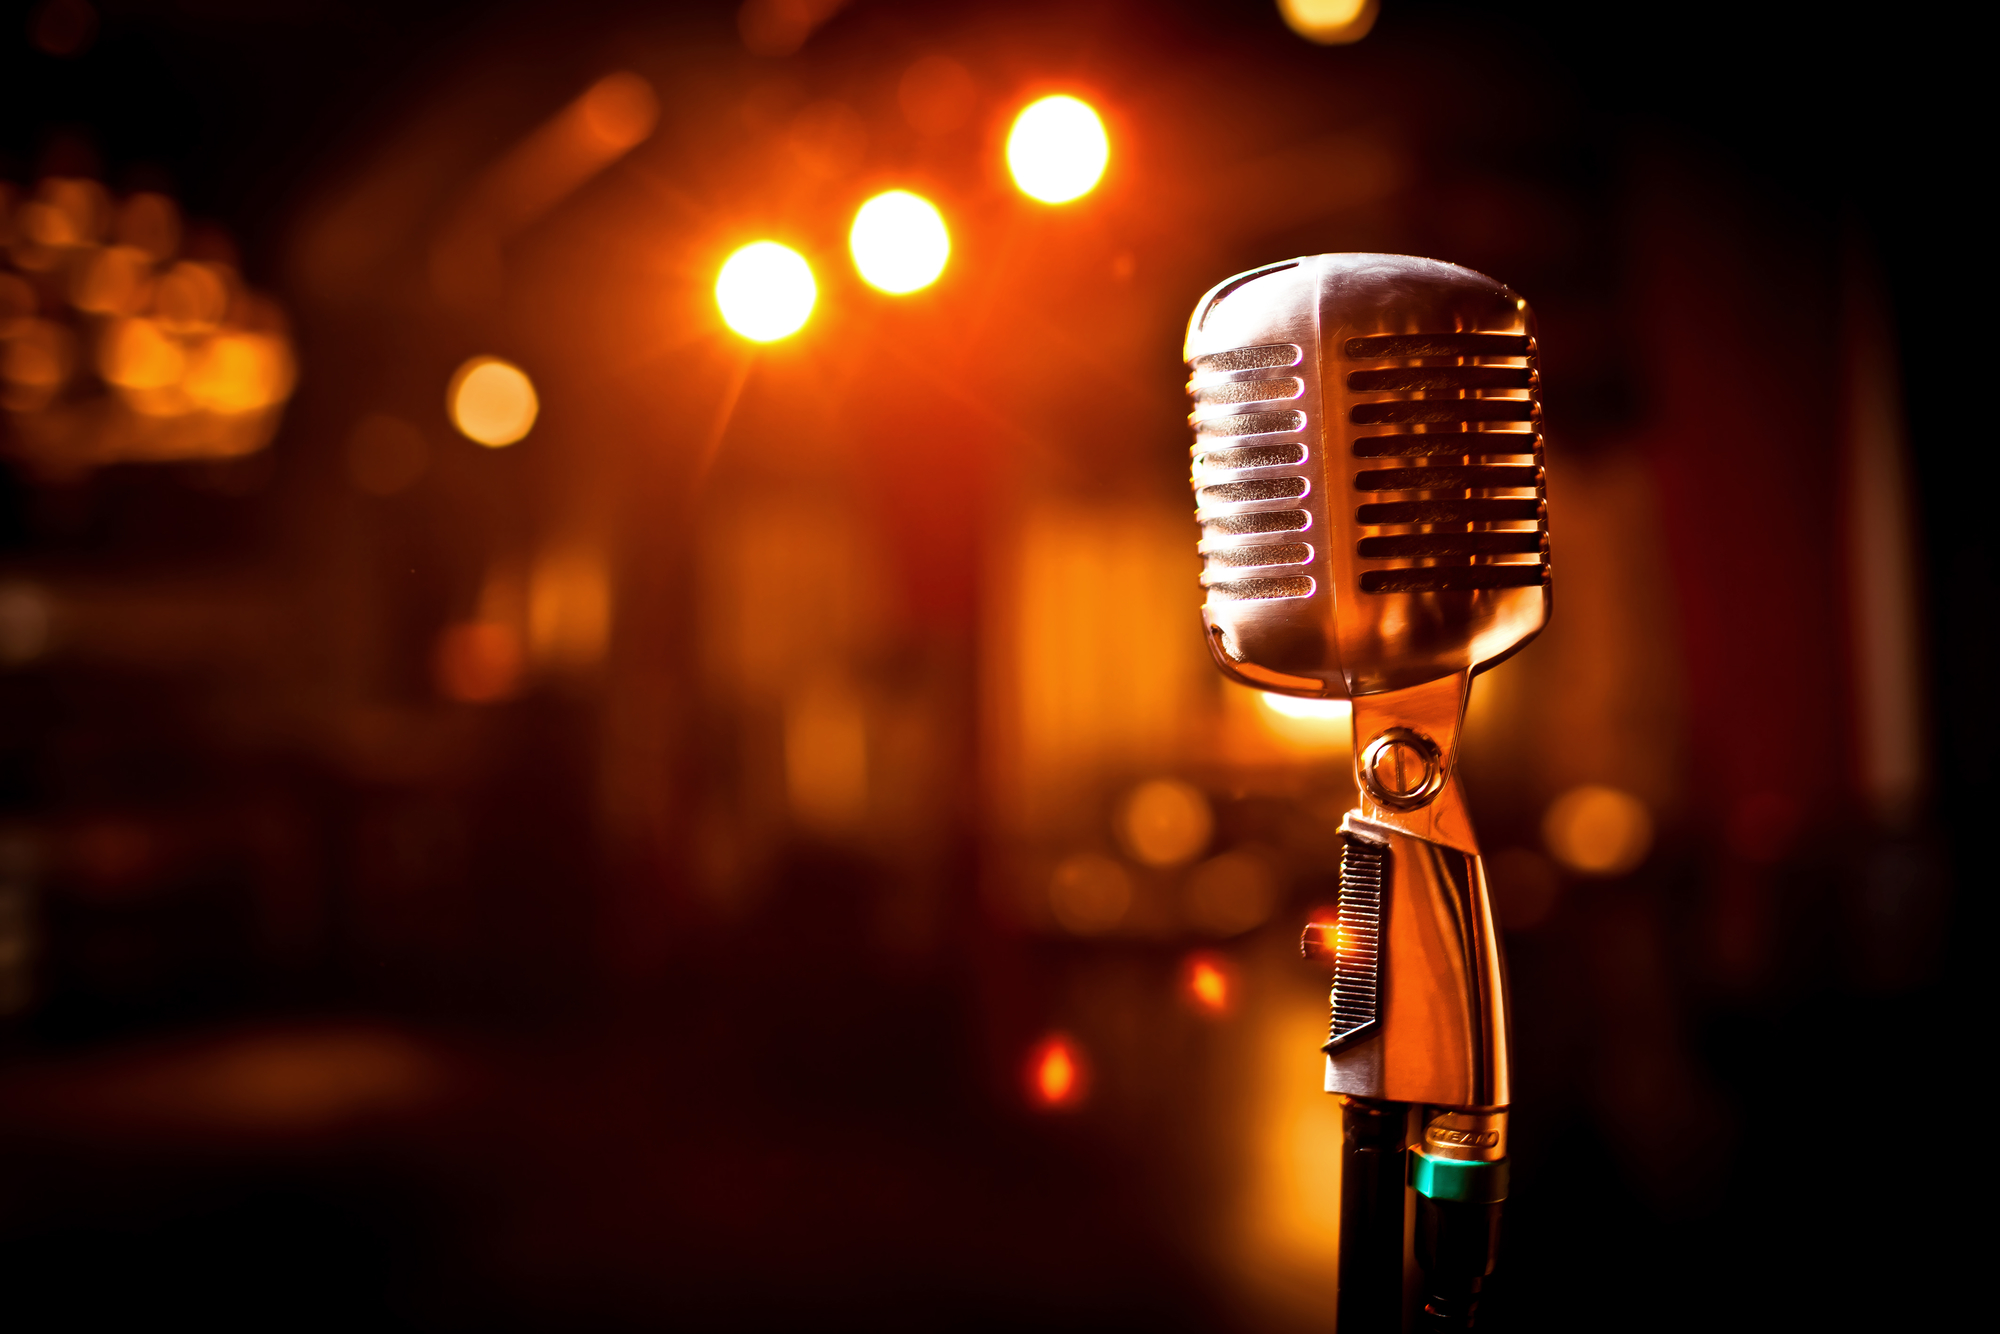 Best USB Microphones to Use on a Tight Budget